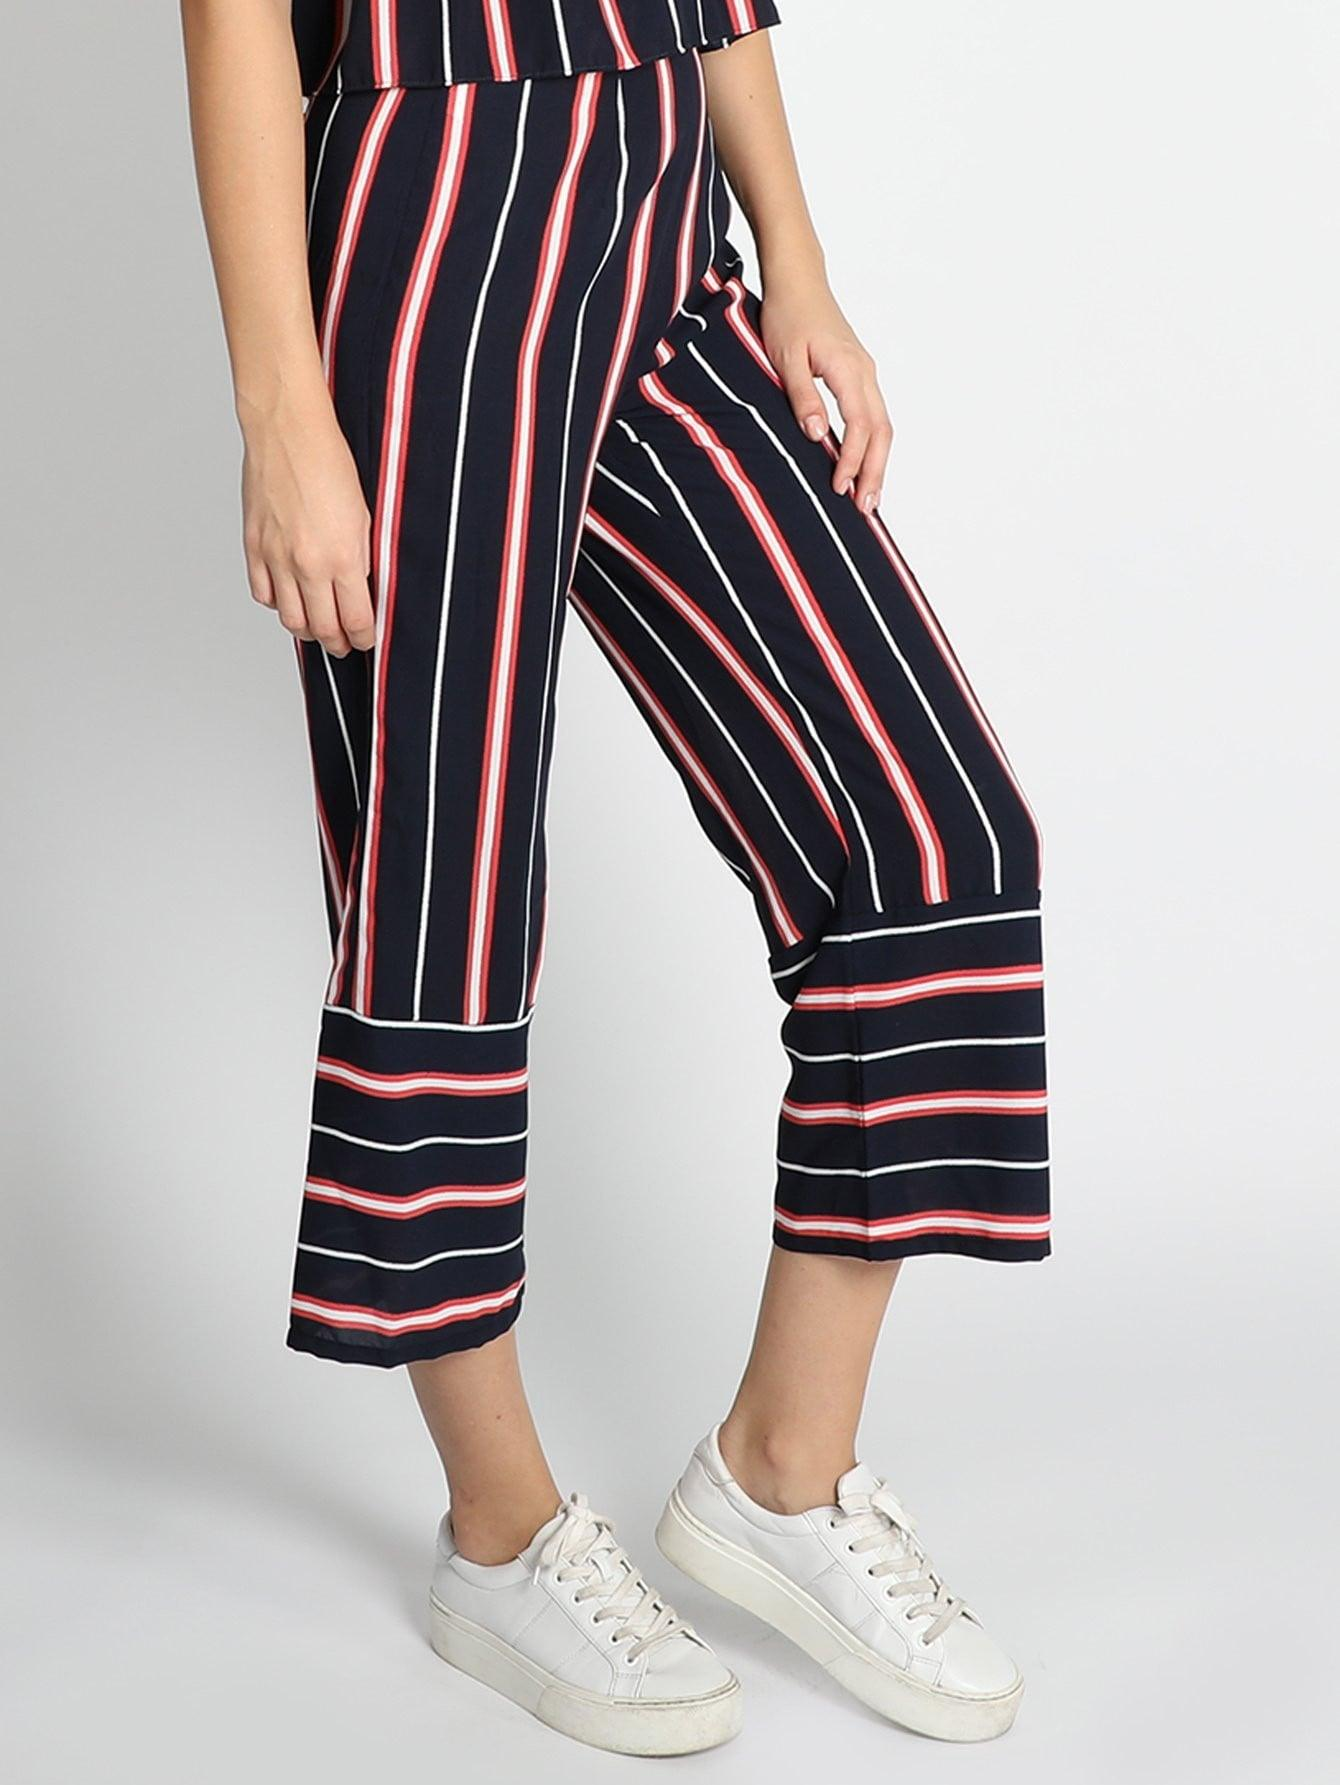 Stripes Culottes - Pants - Zooomberg - Zoomberg